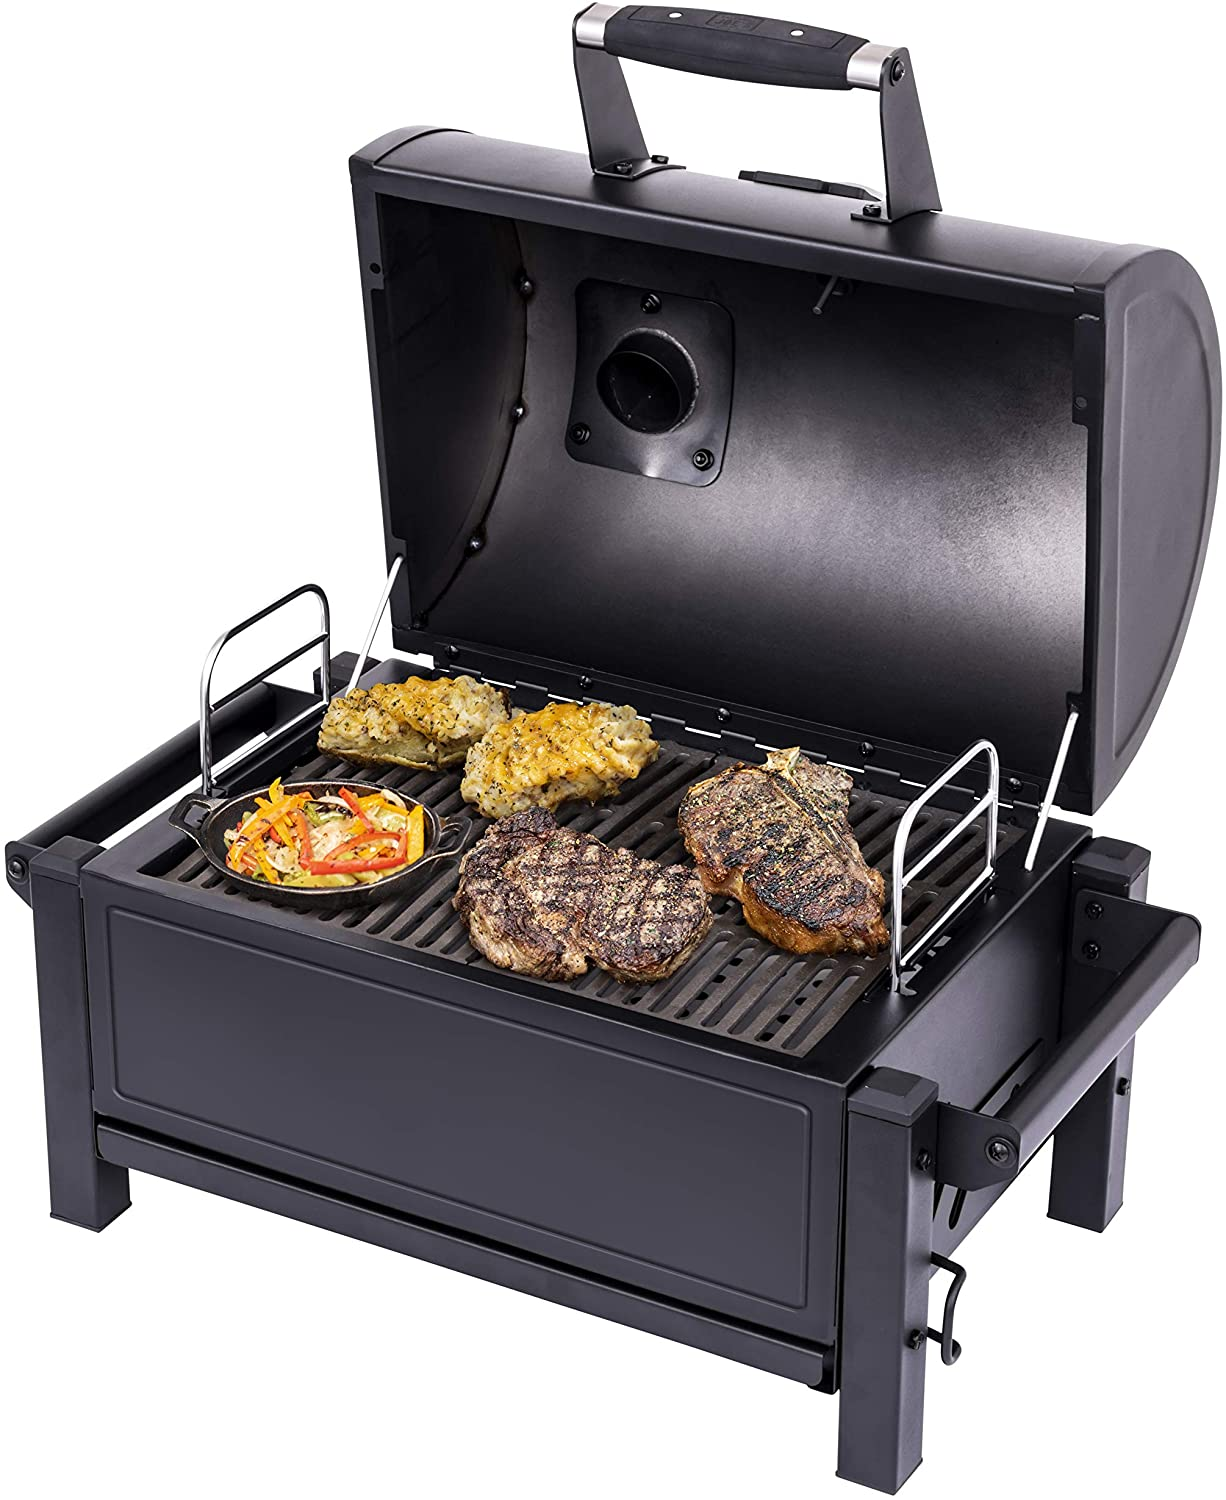 Top 5 Best Portable Charcoal Grills Review